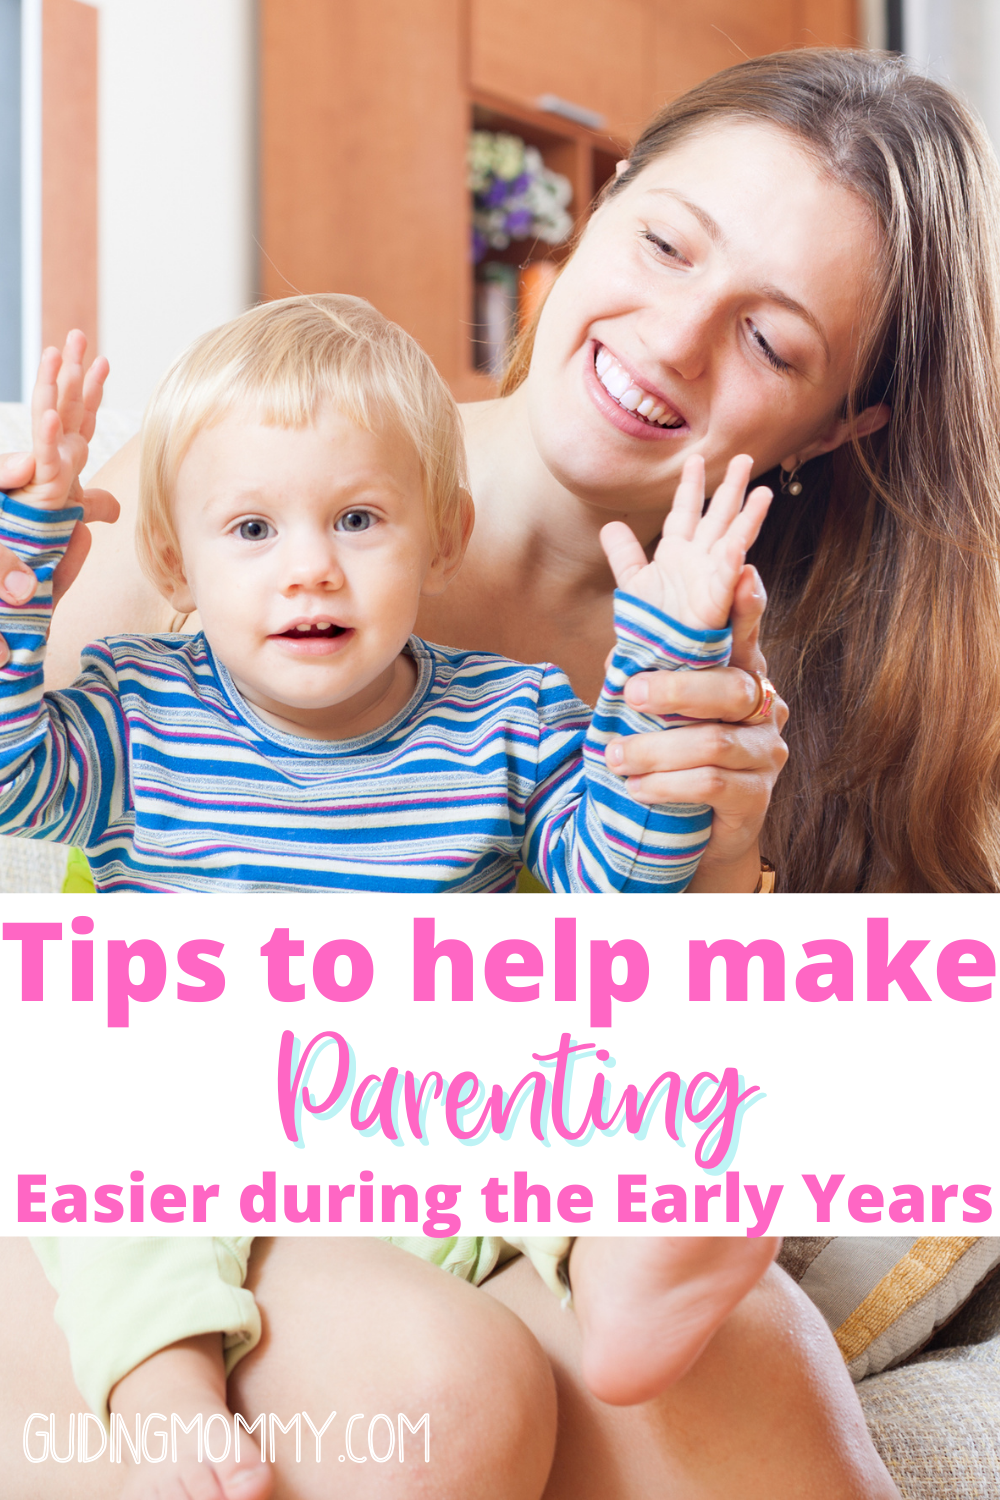 Tips to help make parenting easier during the early years